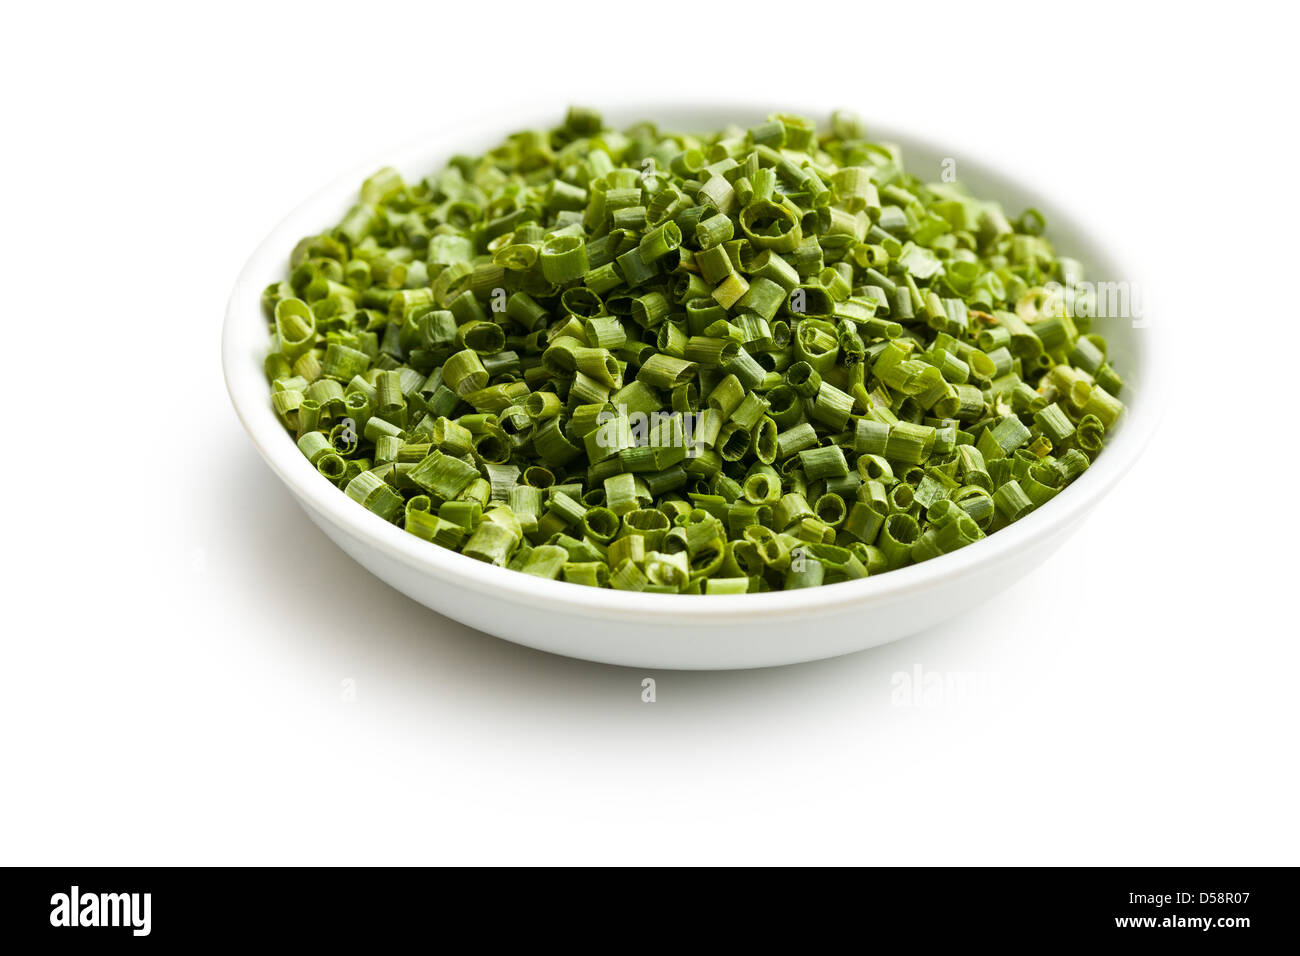 the green chives in ceramic bowl - Stock Image